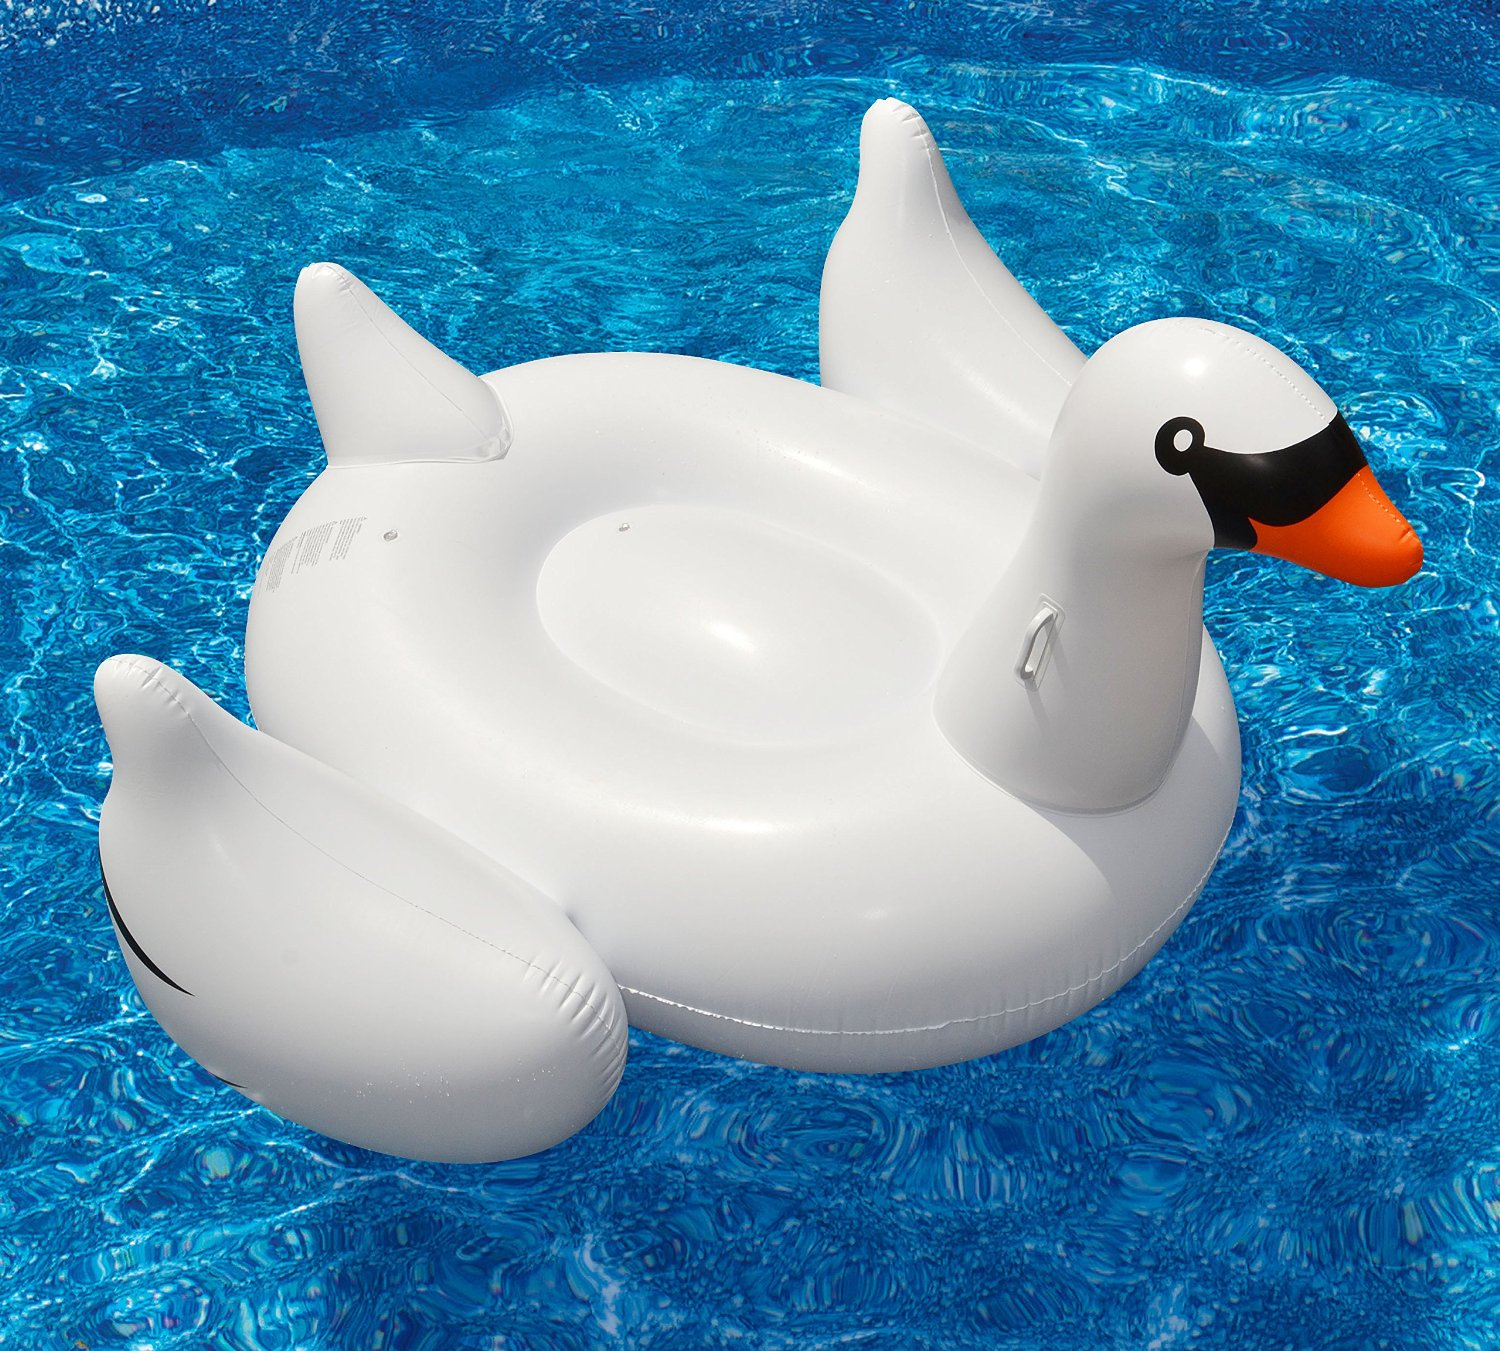 Amazon Deal: Giant Inflatable Swan 54% Off, Only $23